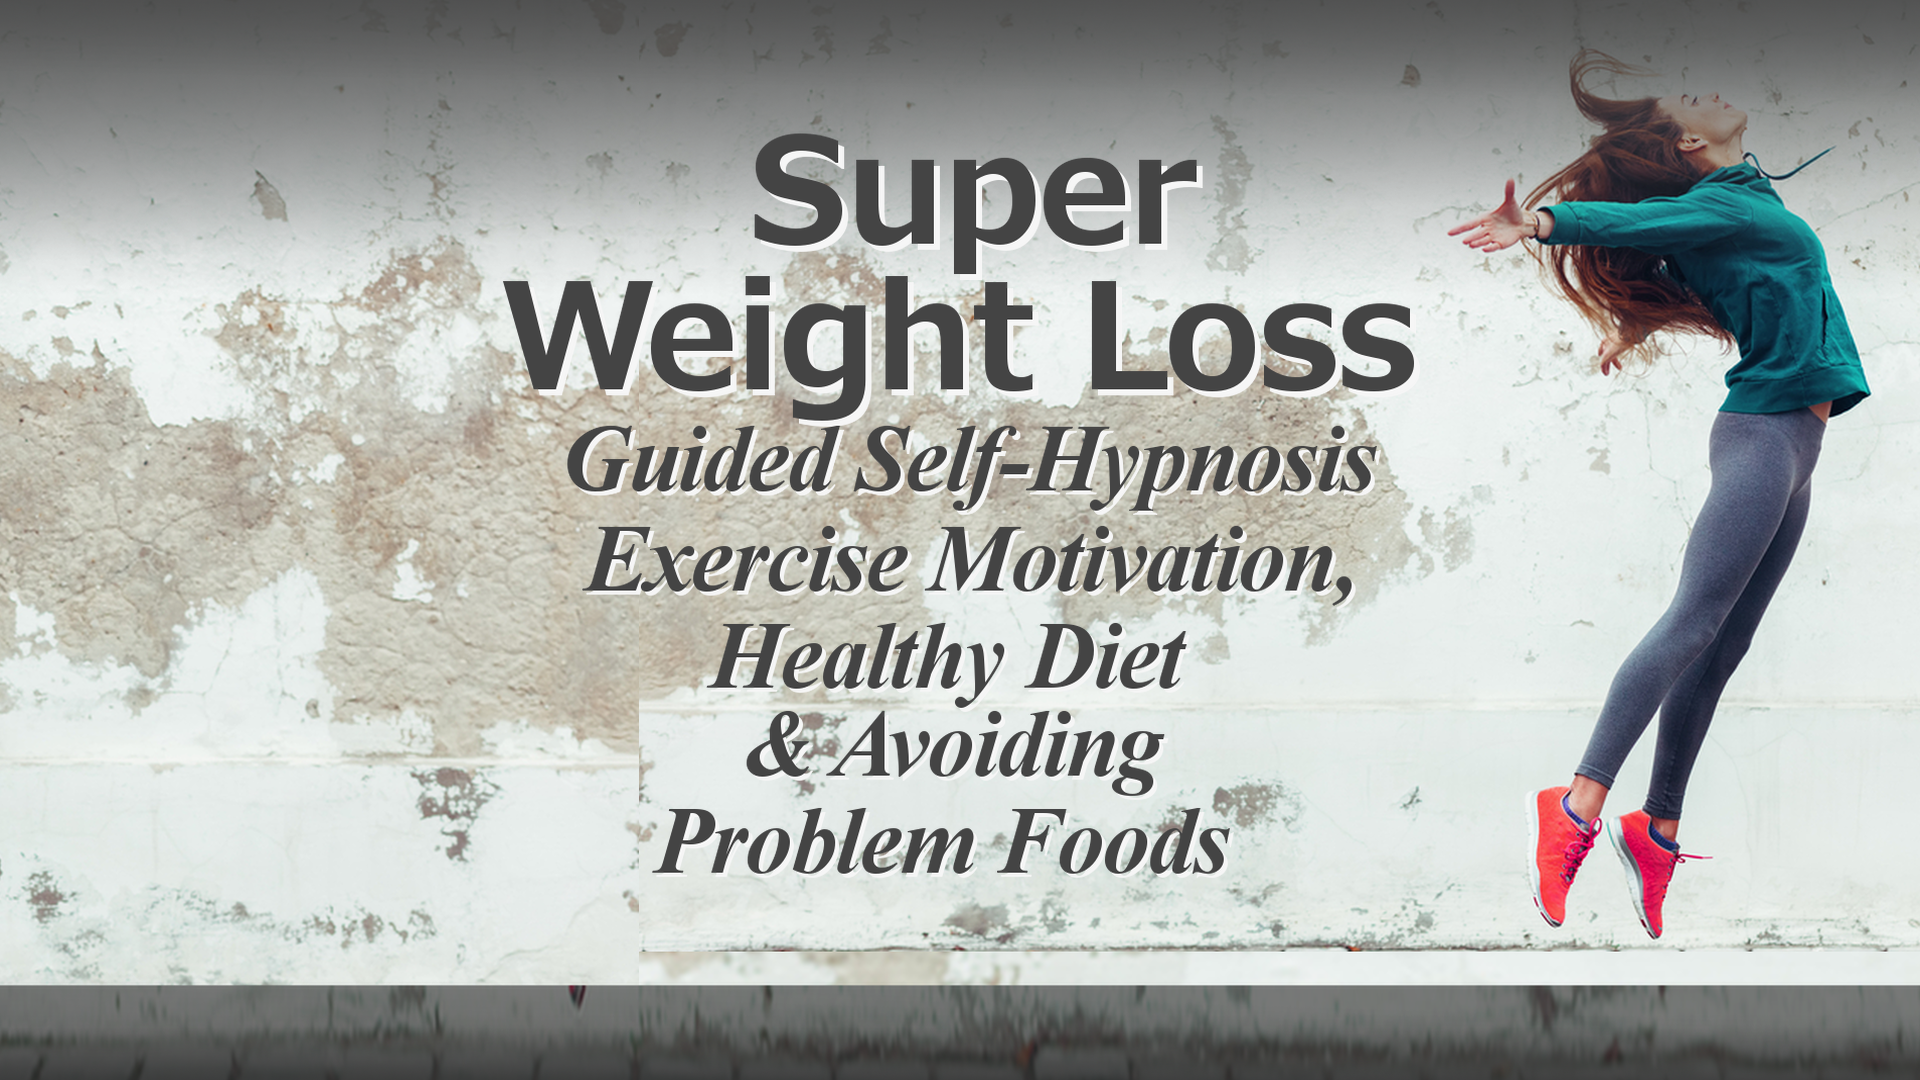 Watch Willpower Masterclass Weight Loss Self Control Edition Prime Video